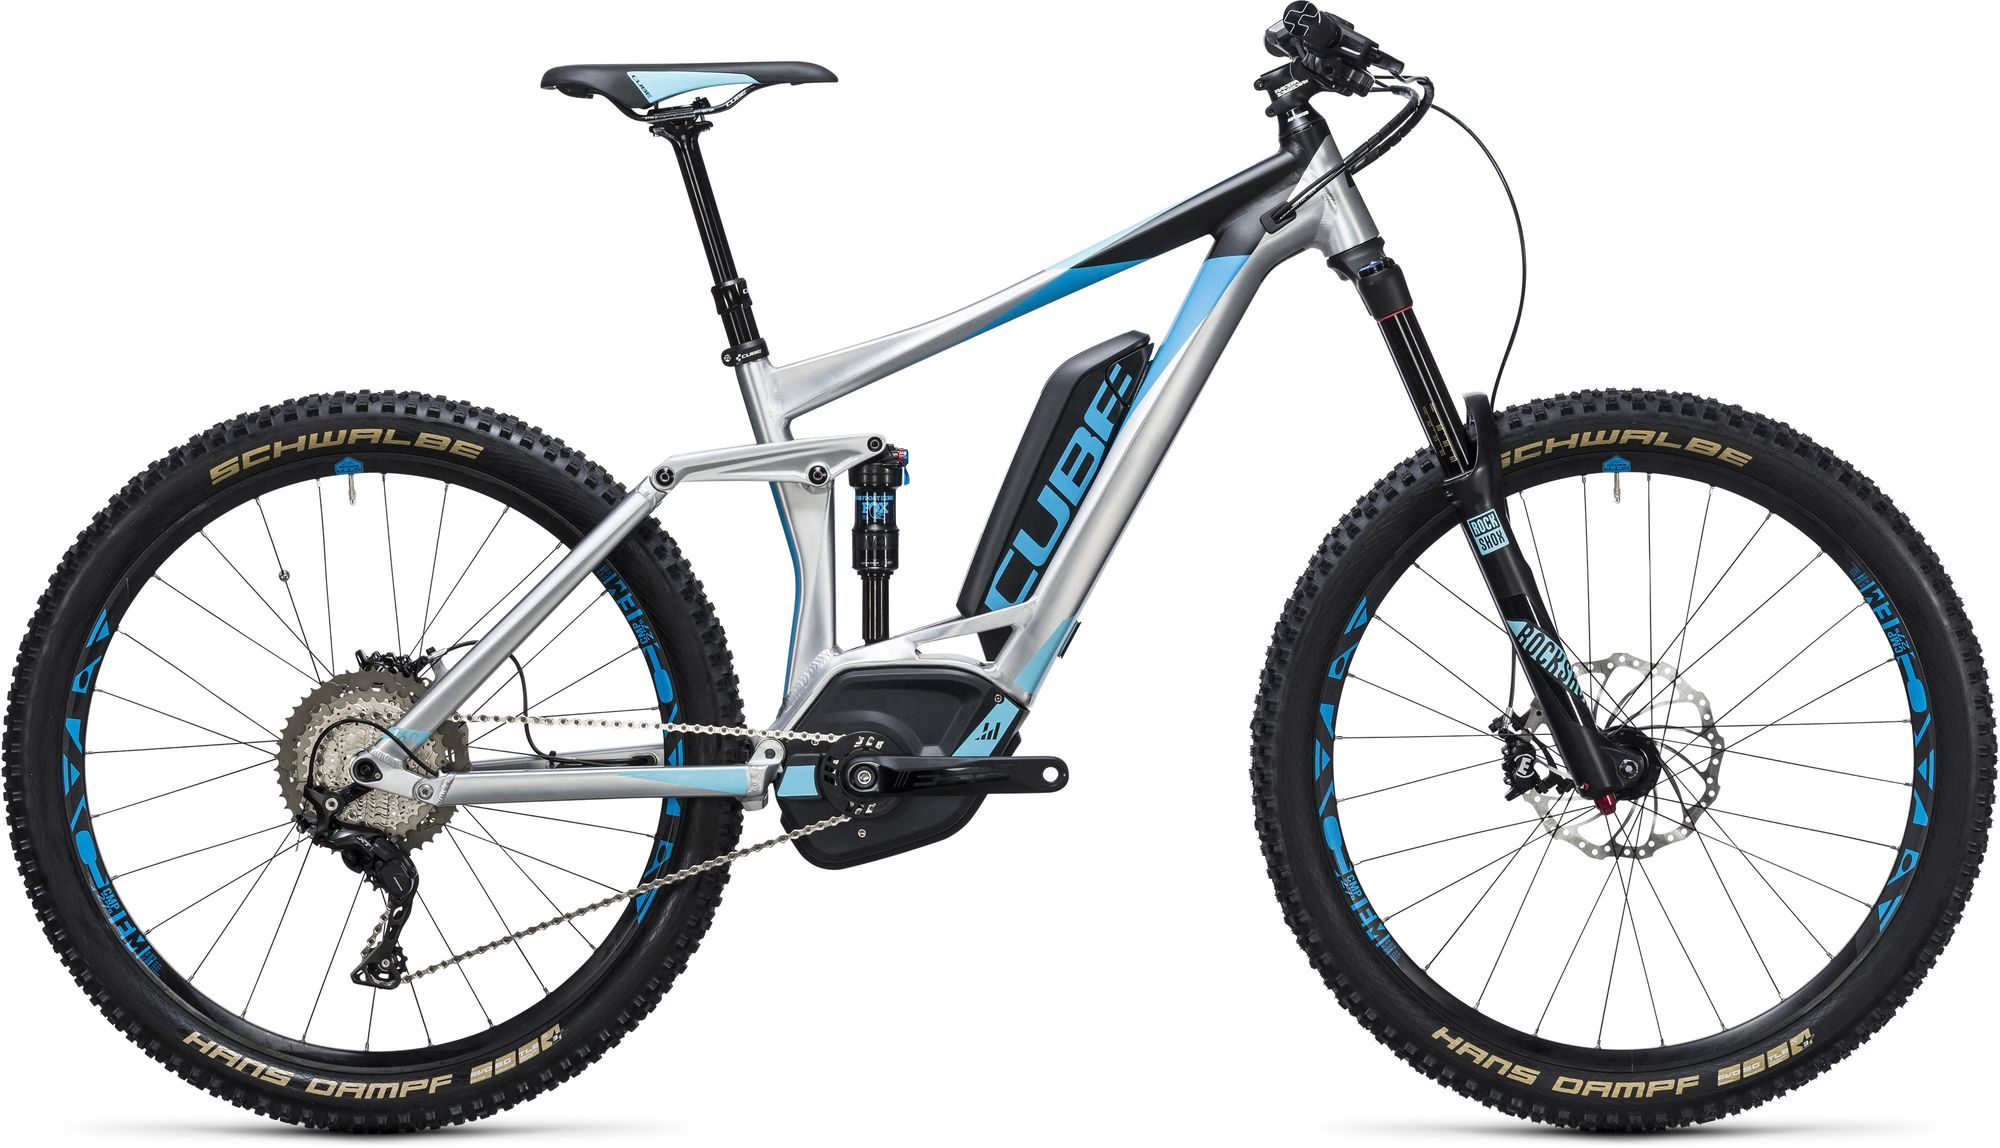 Velo Electrique Cube 2017 Cube Stereo Hybrid 160 Hpa Race 500 27 5 2017 Velobrival